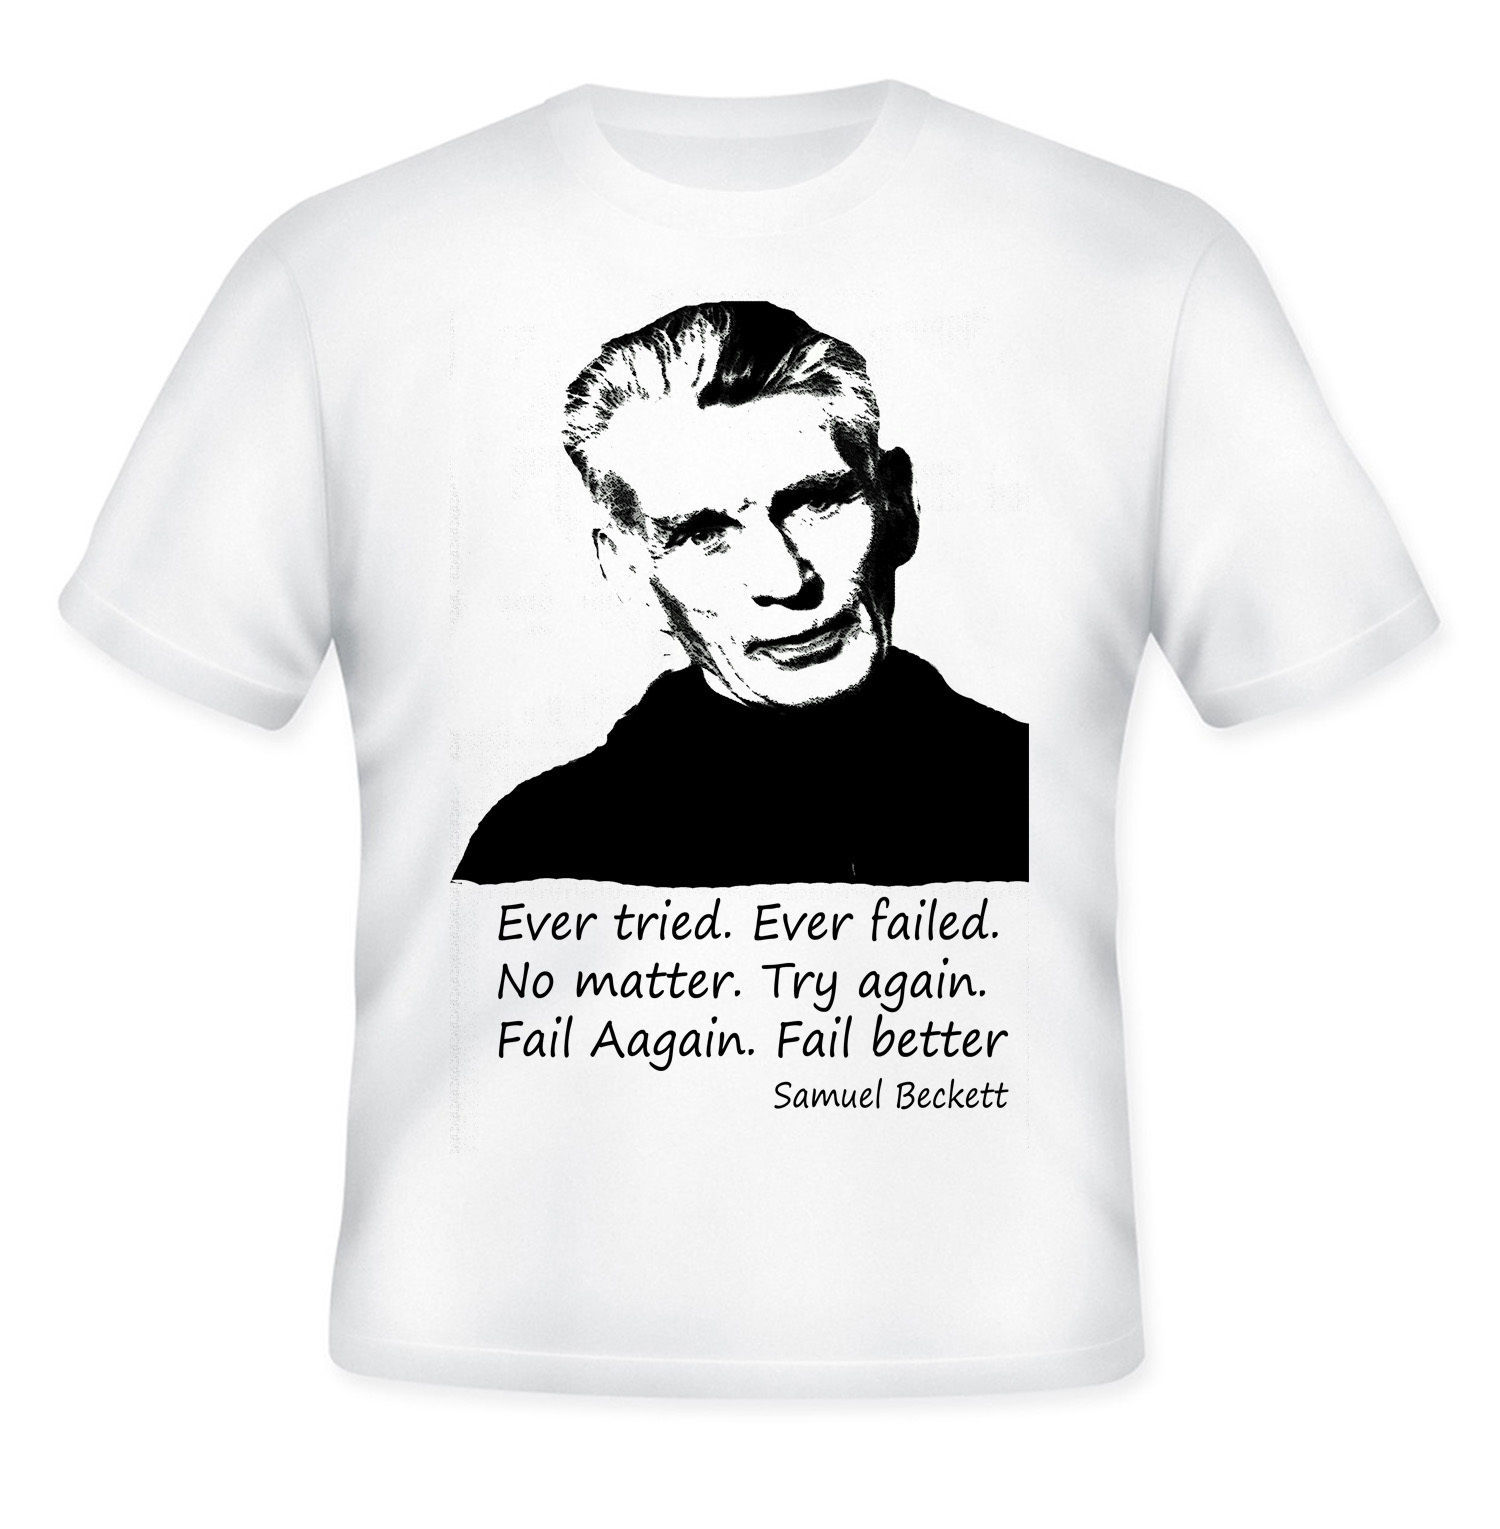 Primary image for SAMUEL BECKETT  - NEW AMAZING GRAPHIC T-SHIRT WITH QUOTE - S-M-L